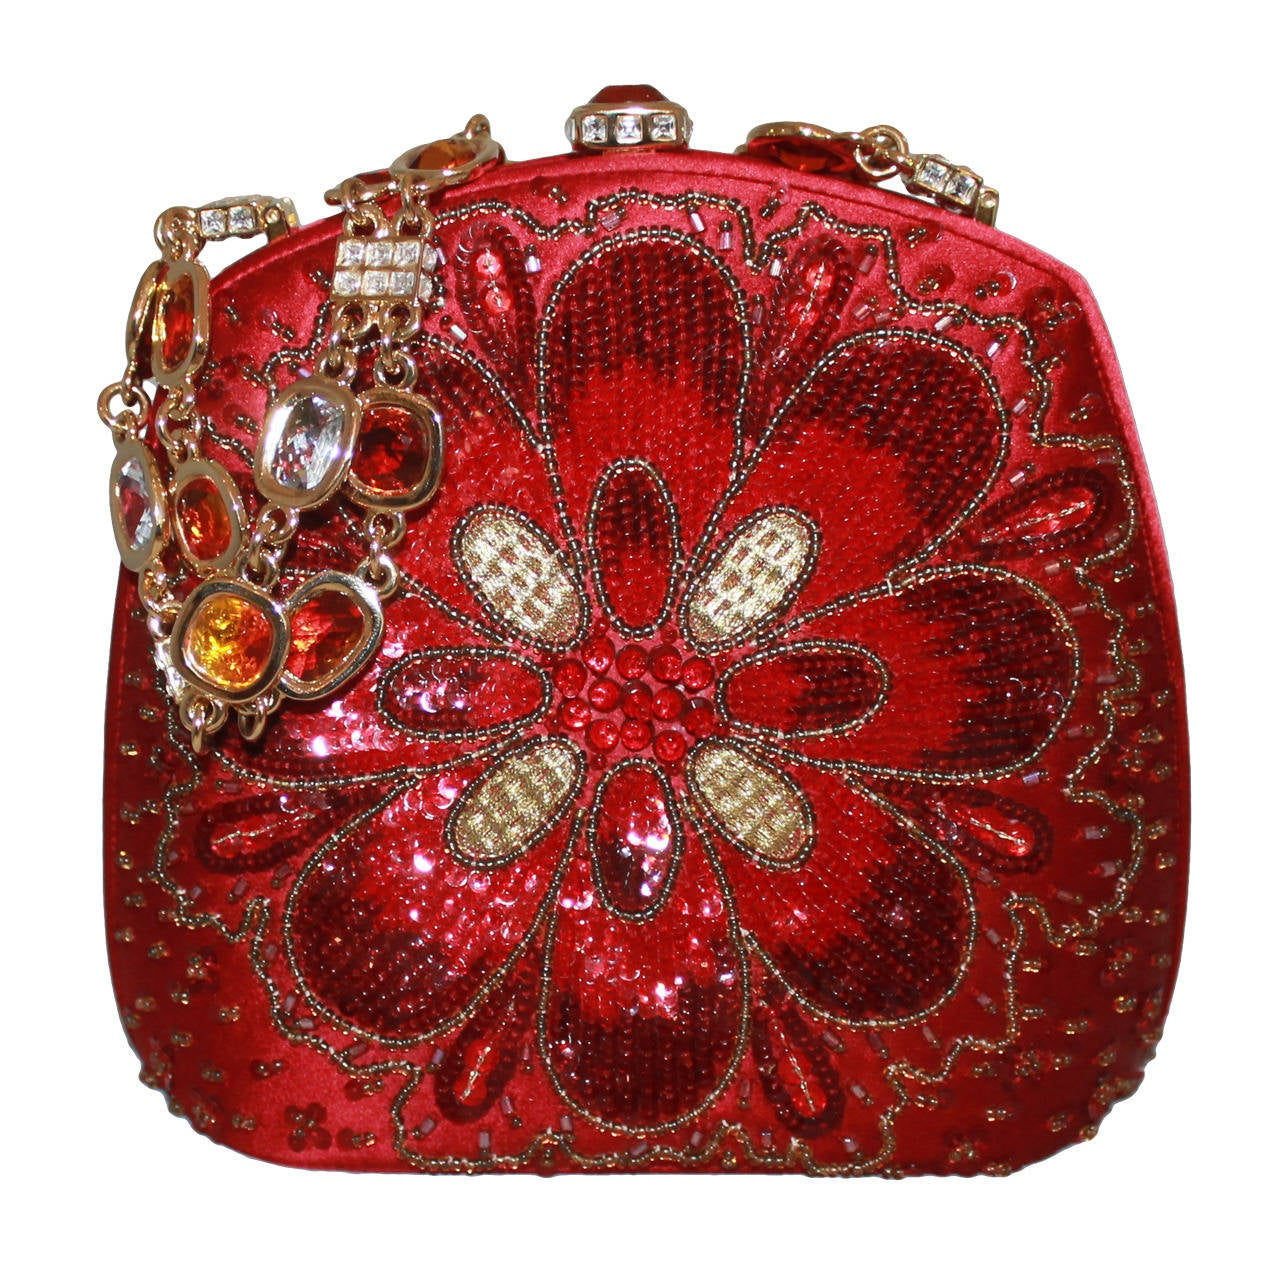 Judith Leiber Vintage Red Satin Beaded Evening Bag with Jeweled Handle 1